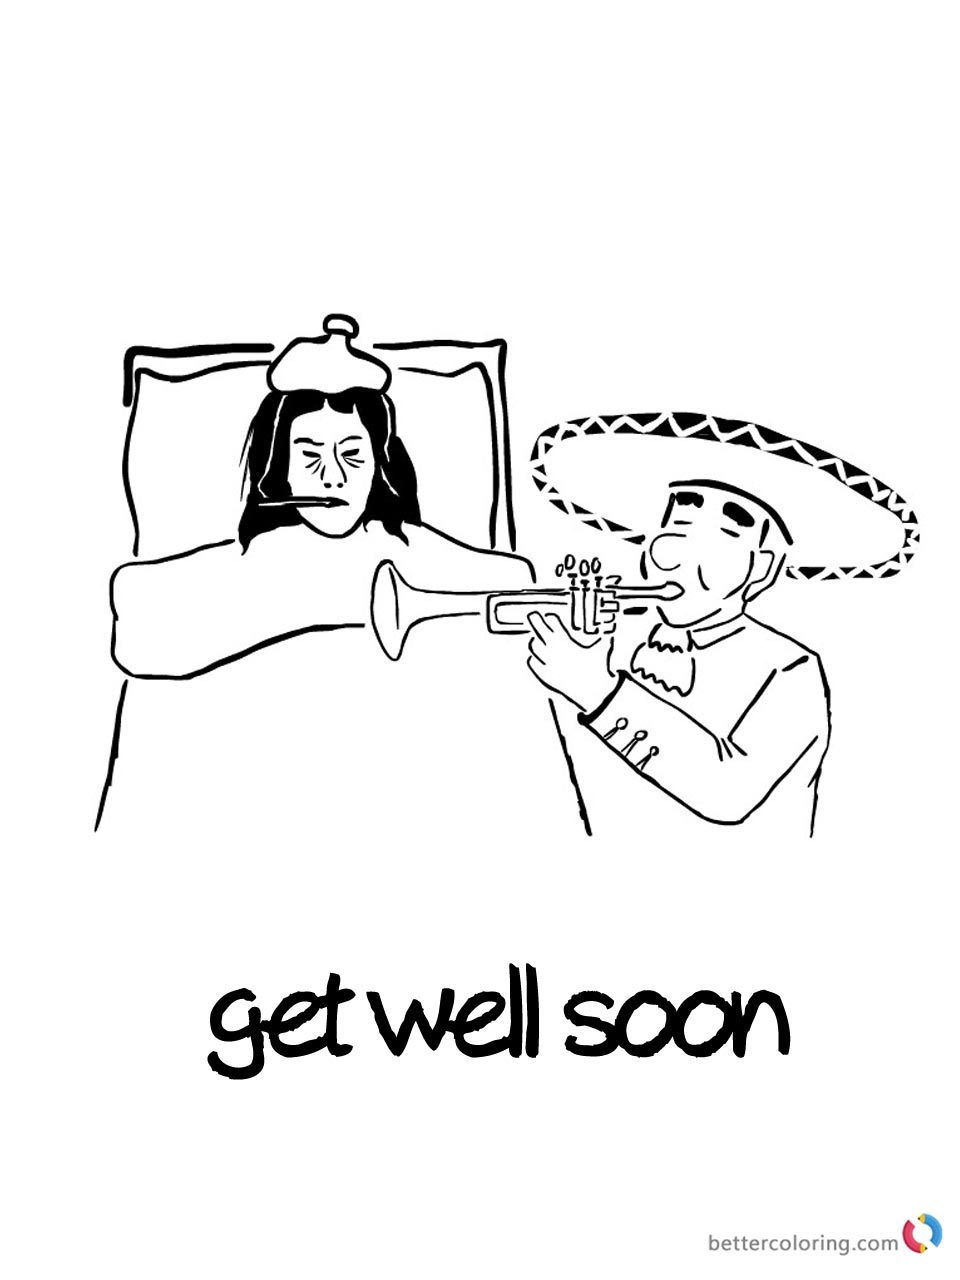 Get Well Soon Coloring Page Play Music for Patient Printable